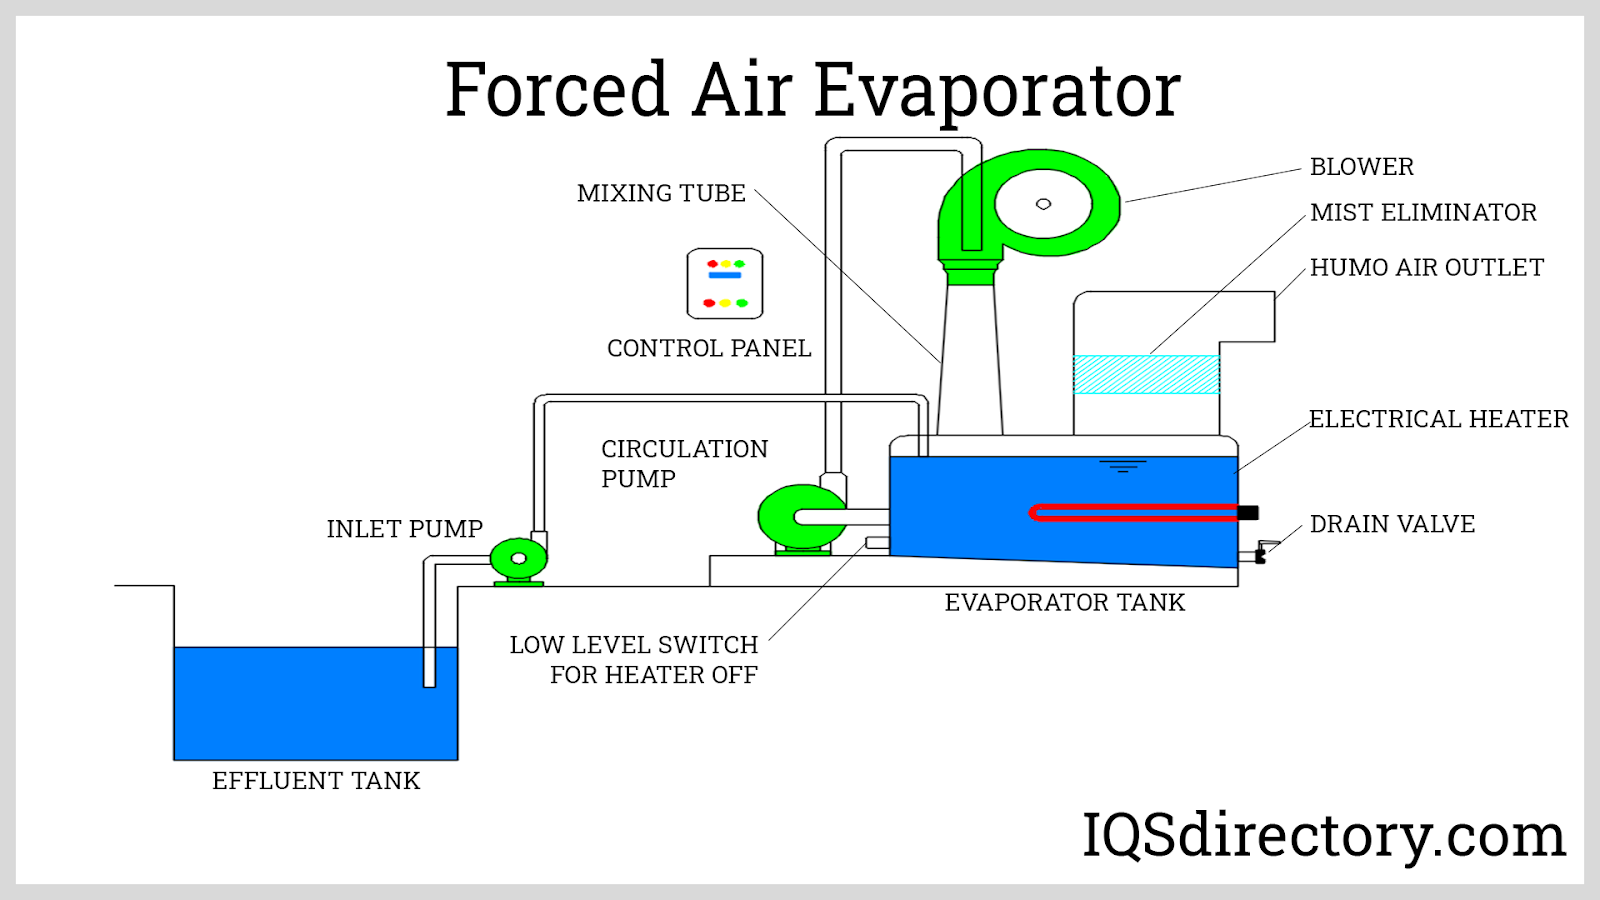 Forced Air Evaporator